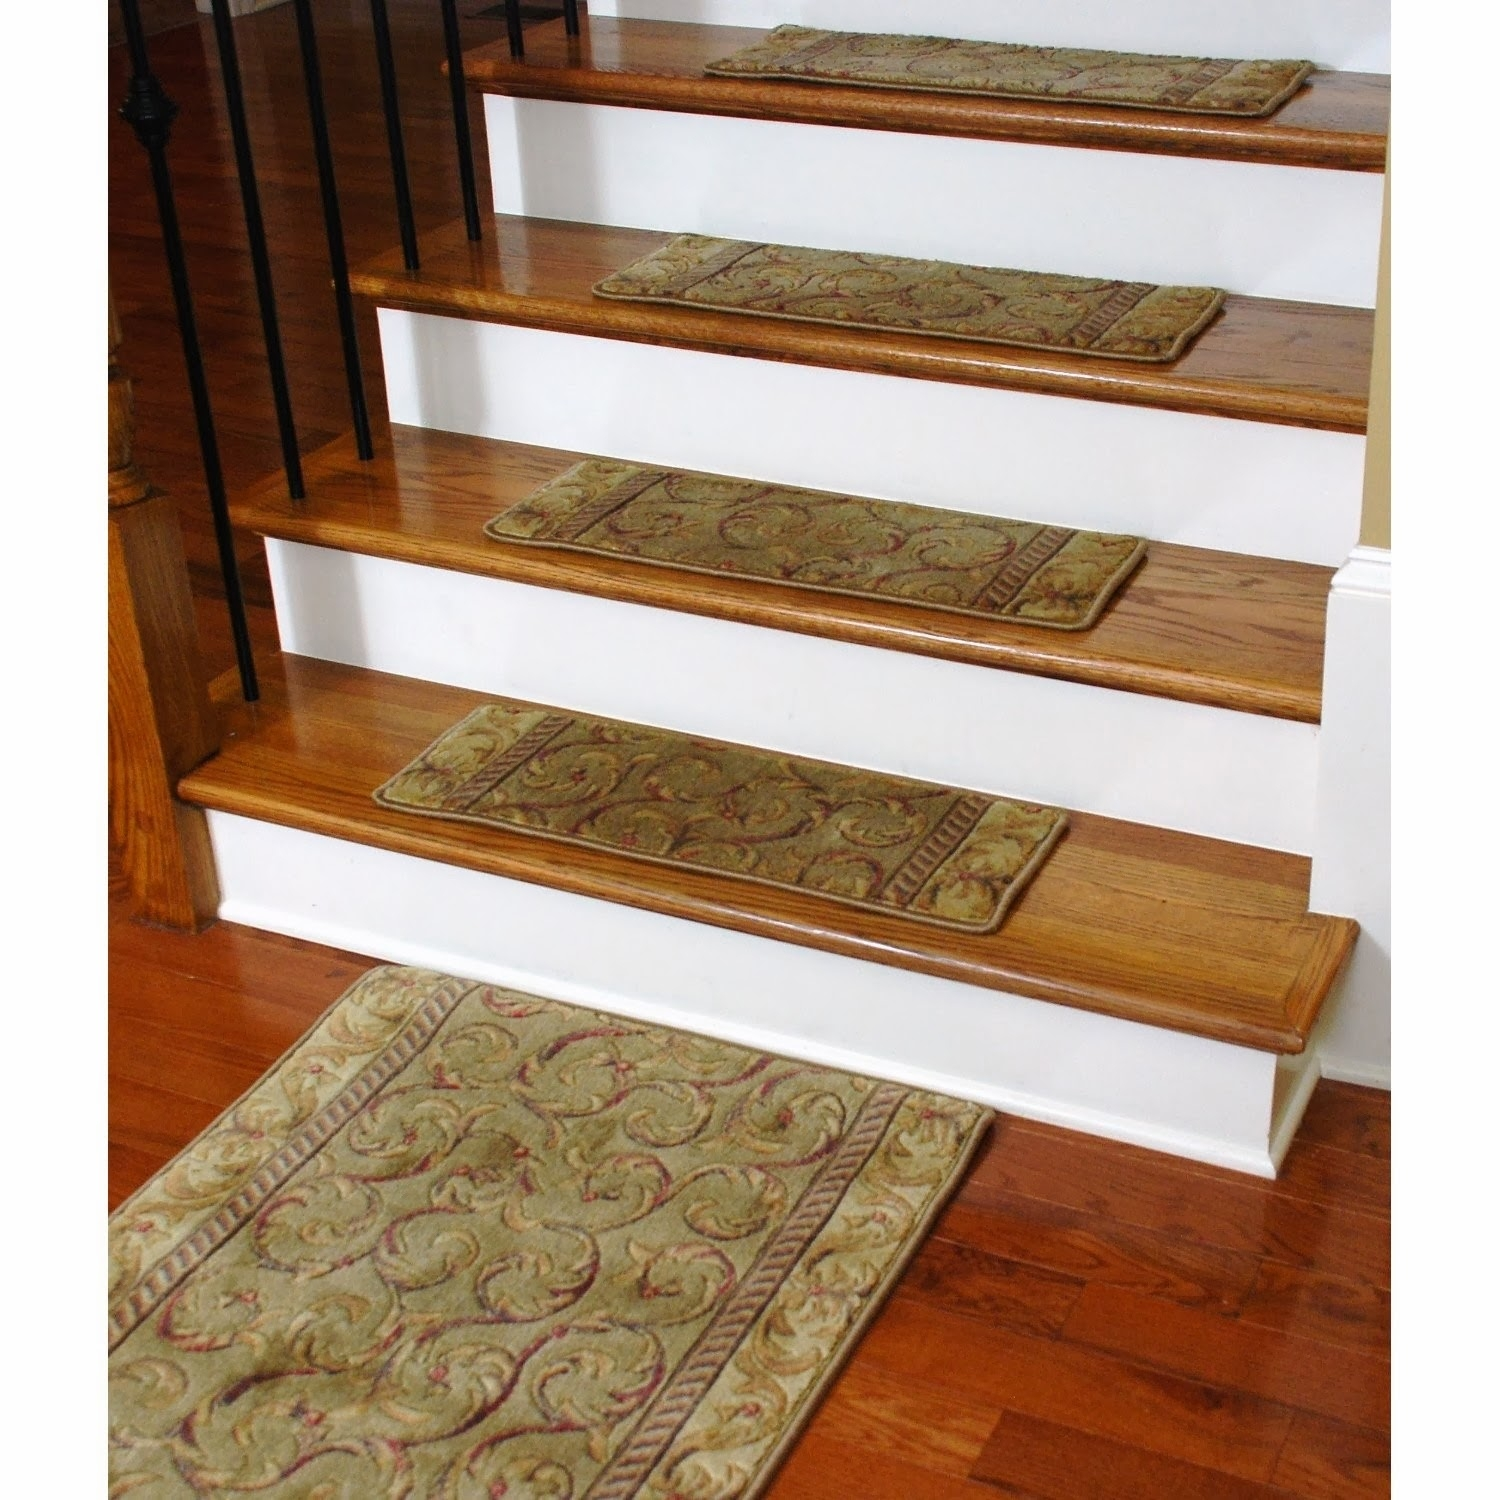 Awesome Carpet Stair Treads Design Irpmi Pertaining To Country Stair Tread Rugs (Image 1 of 15)